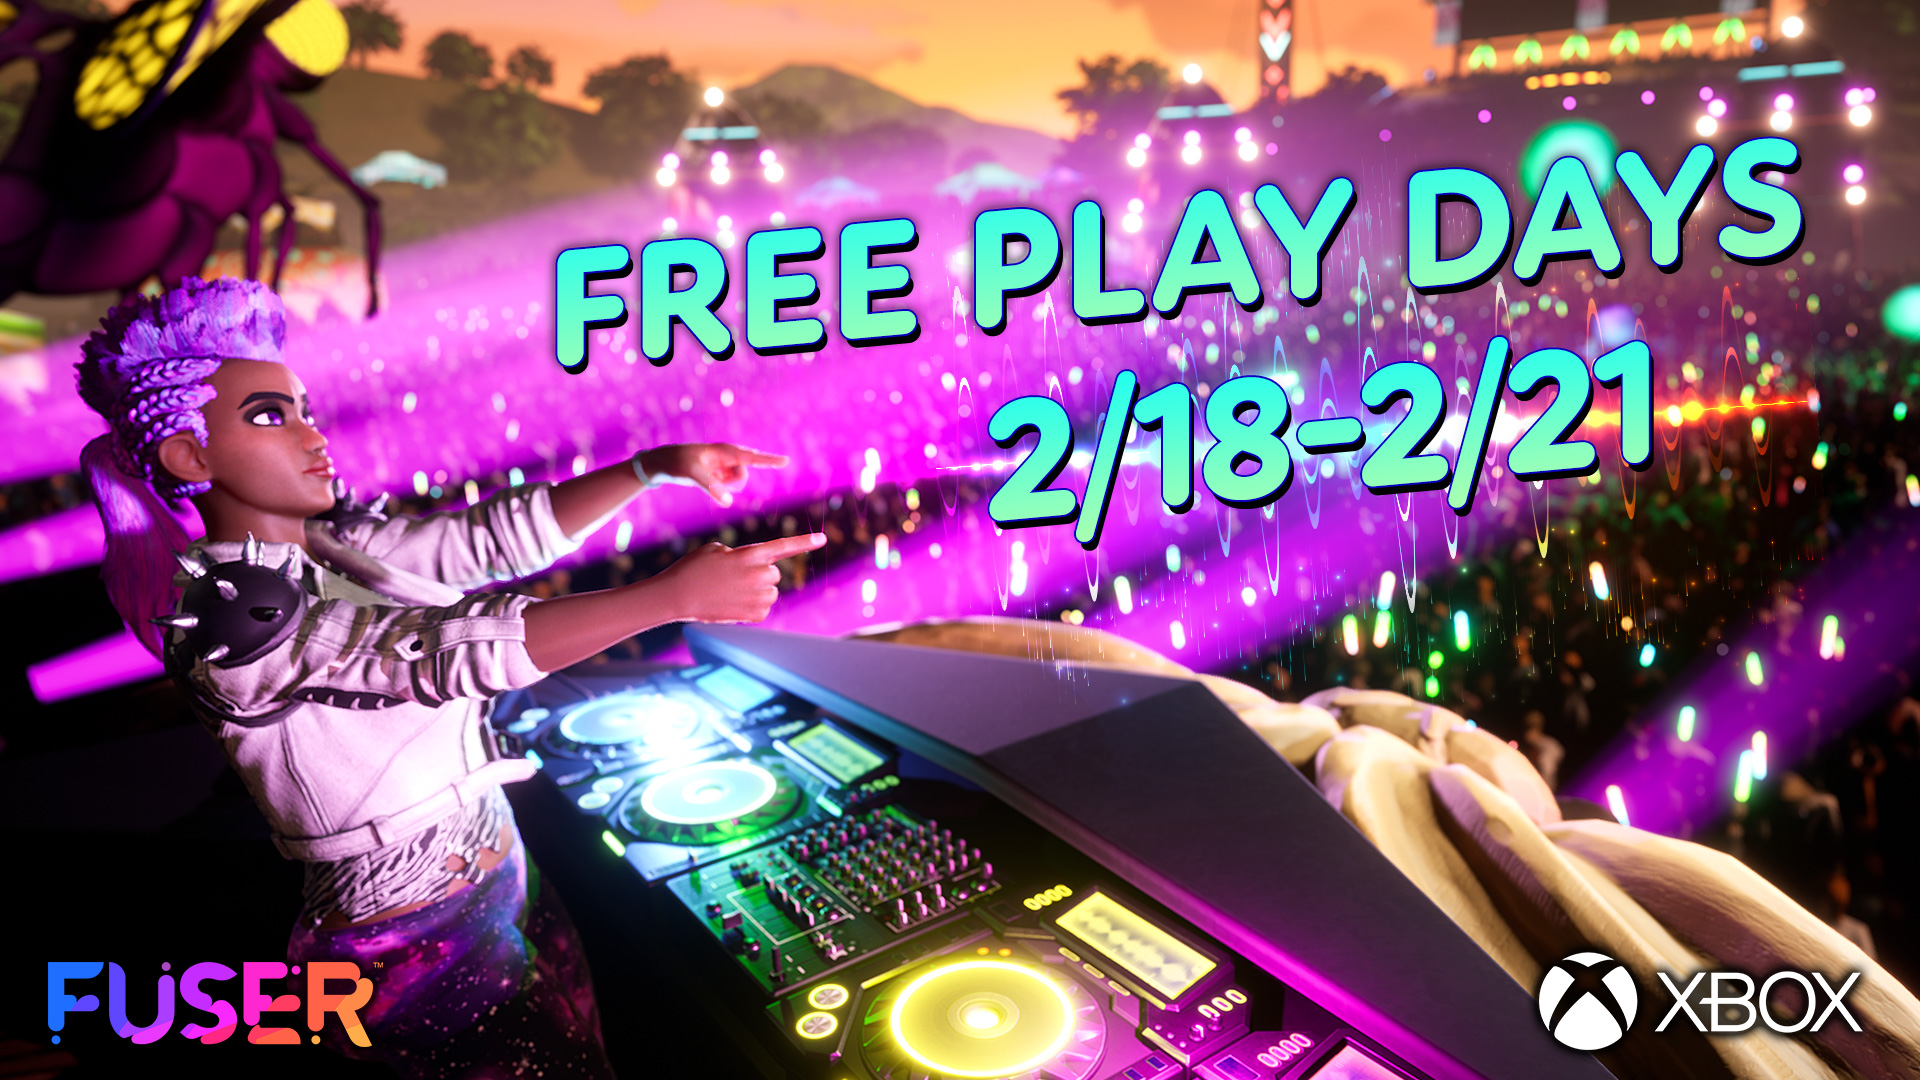 Play FUSER for FREE during Xbox's Free Play Days Event!